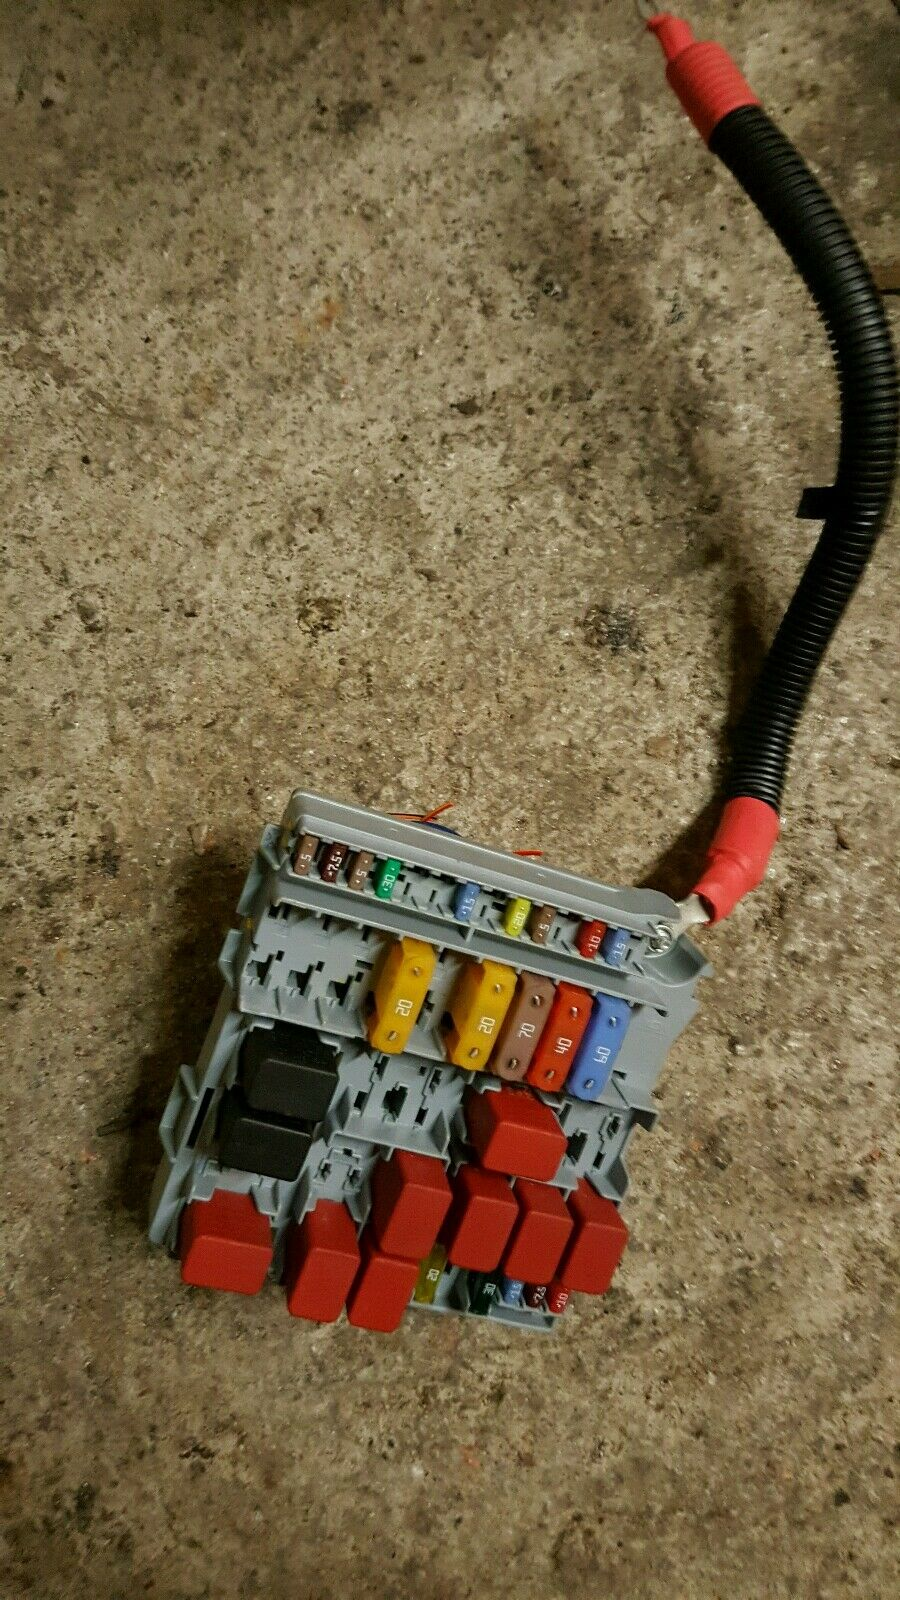 hight resolution of fiat 500 2013 fuse box module 51905216 1 of 3only 1 available